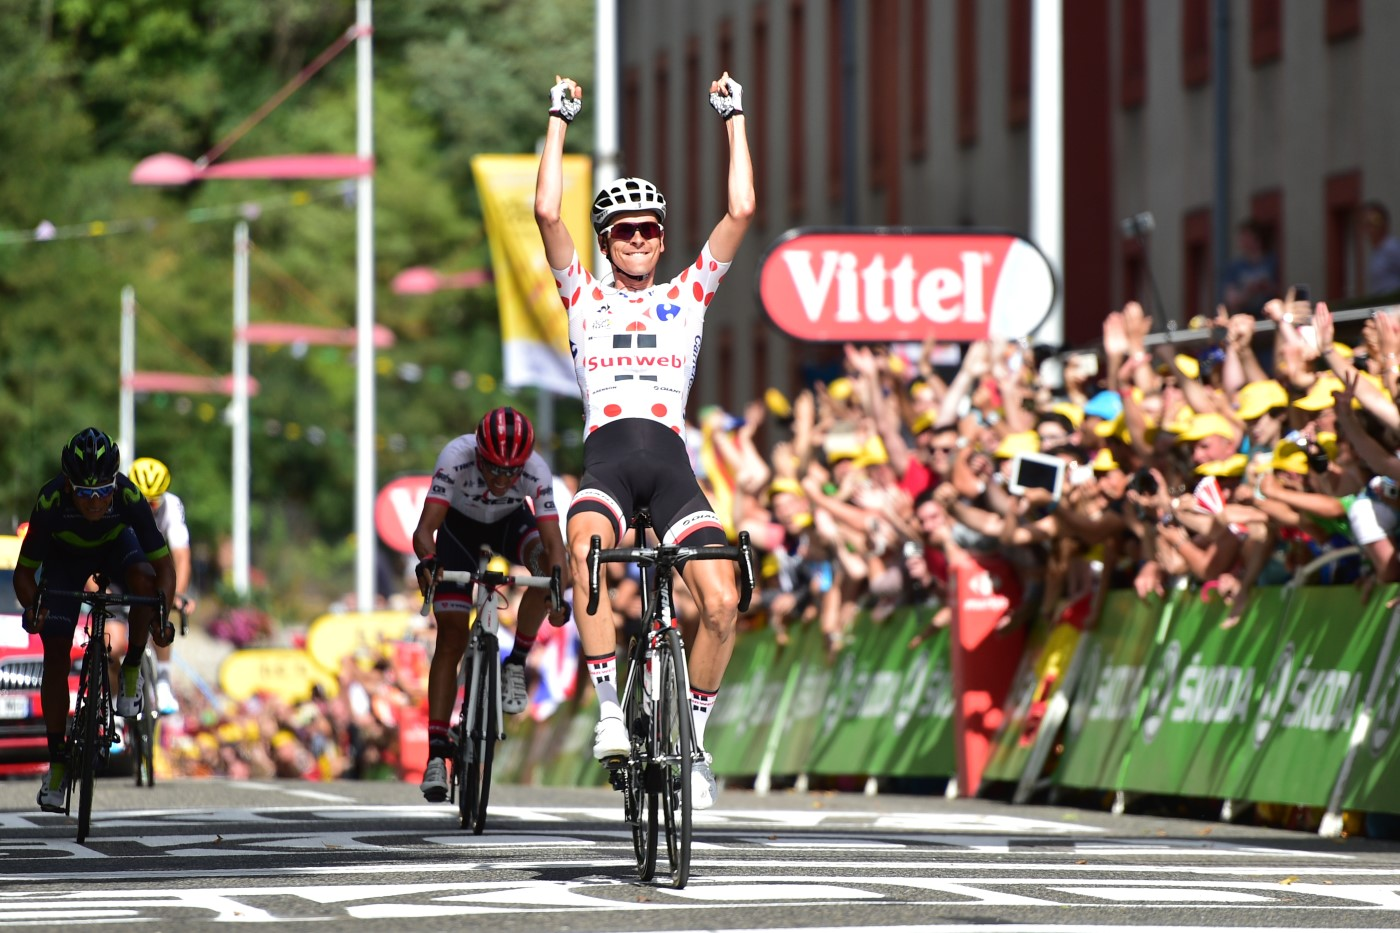 Tour de France 2017 - 14/07/2017 - Etape 13 - Saint-Girons / Foix (101 km) - France - Warren BARGUIL (TEAM SUNWEB) - Vainqueur a Foix